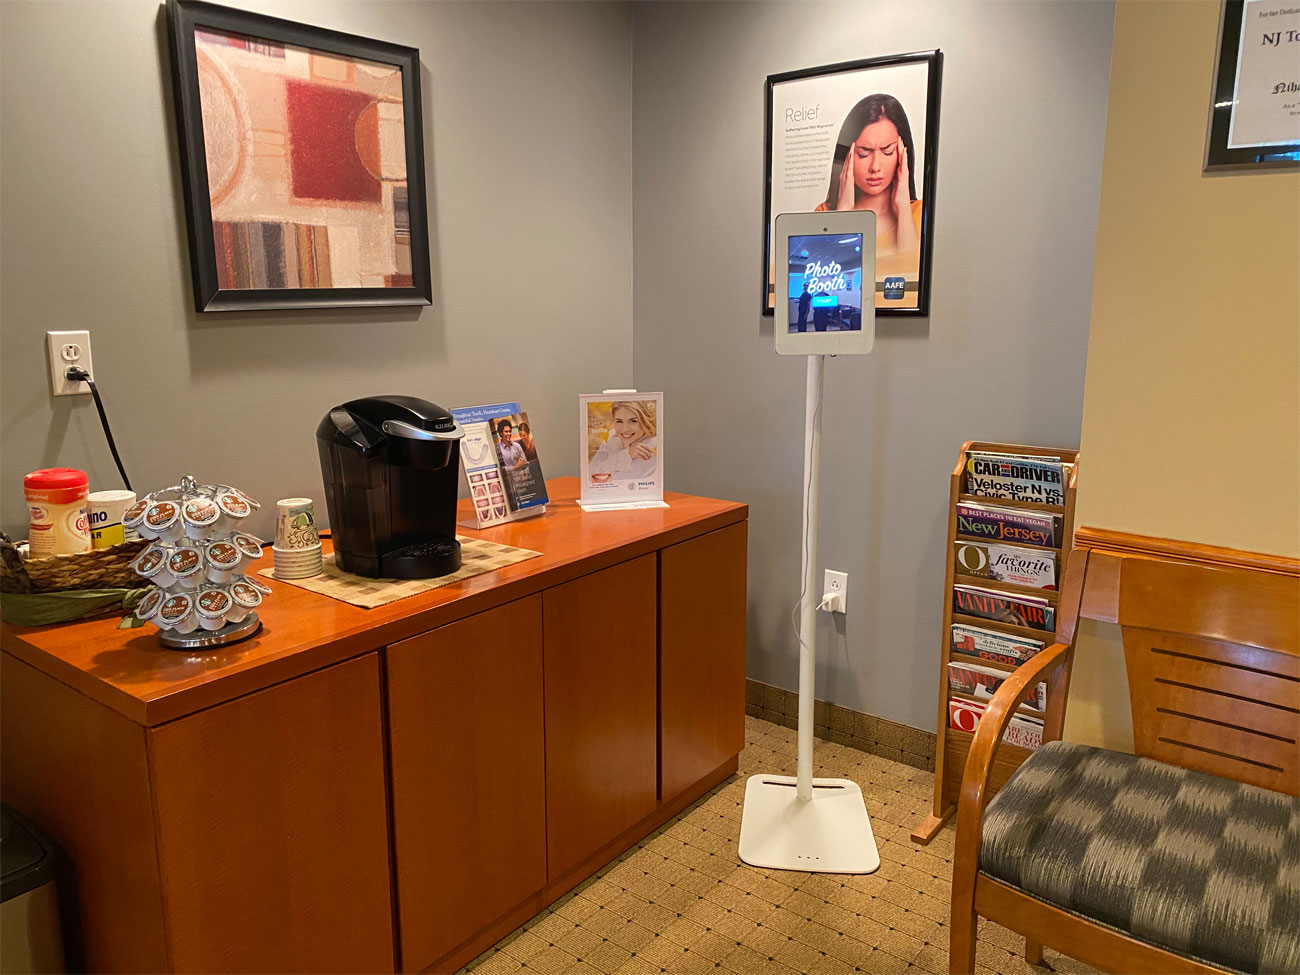 Dental Office Tour Photo #3 - Cranbury, NJ